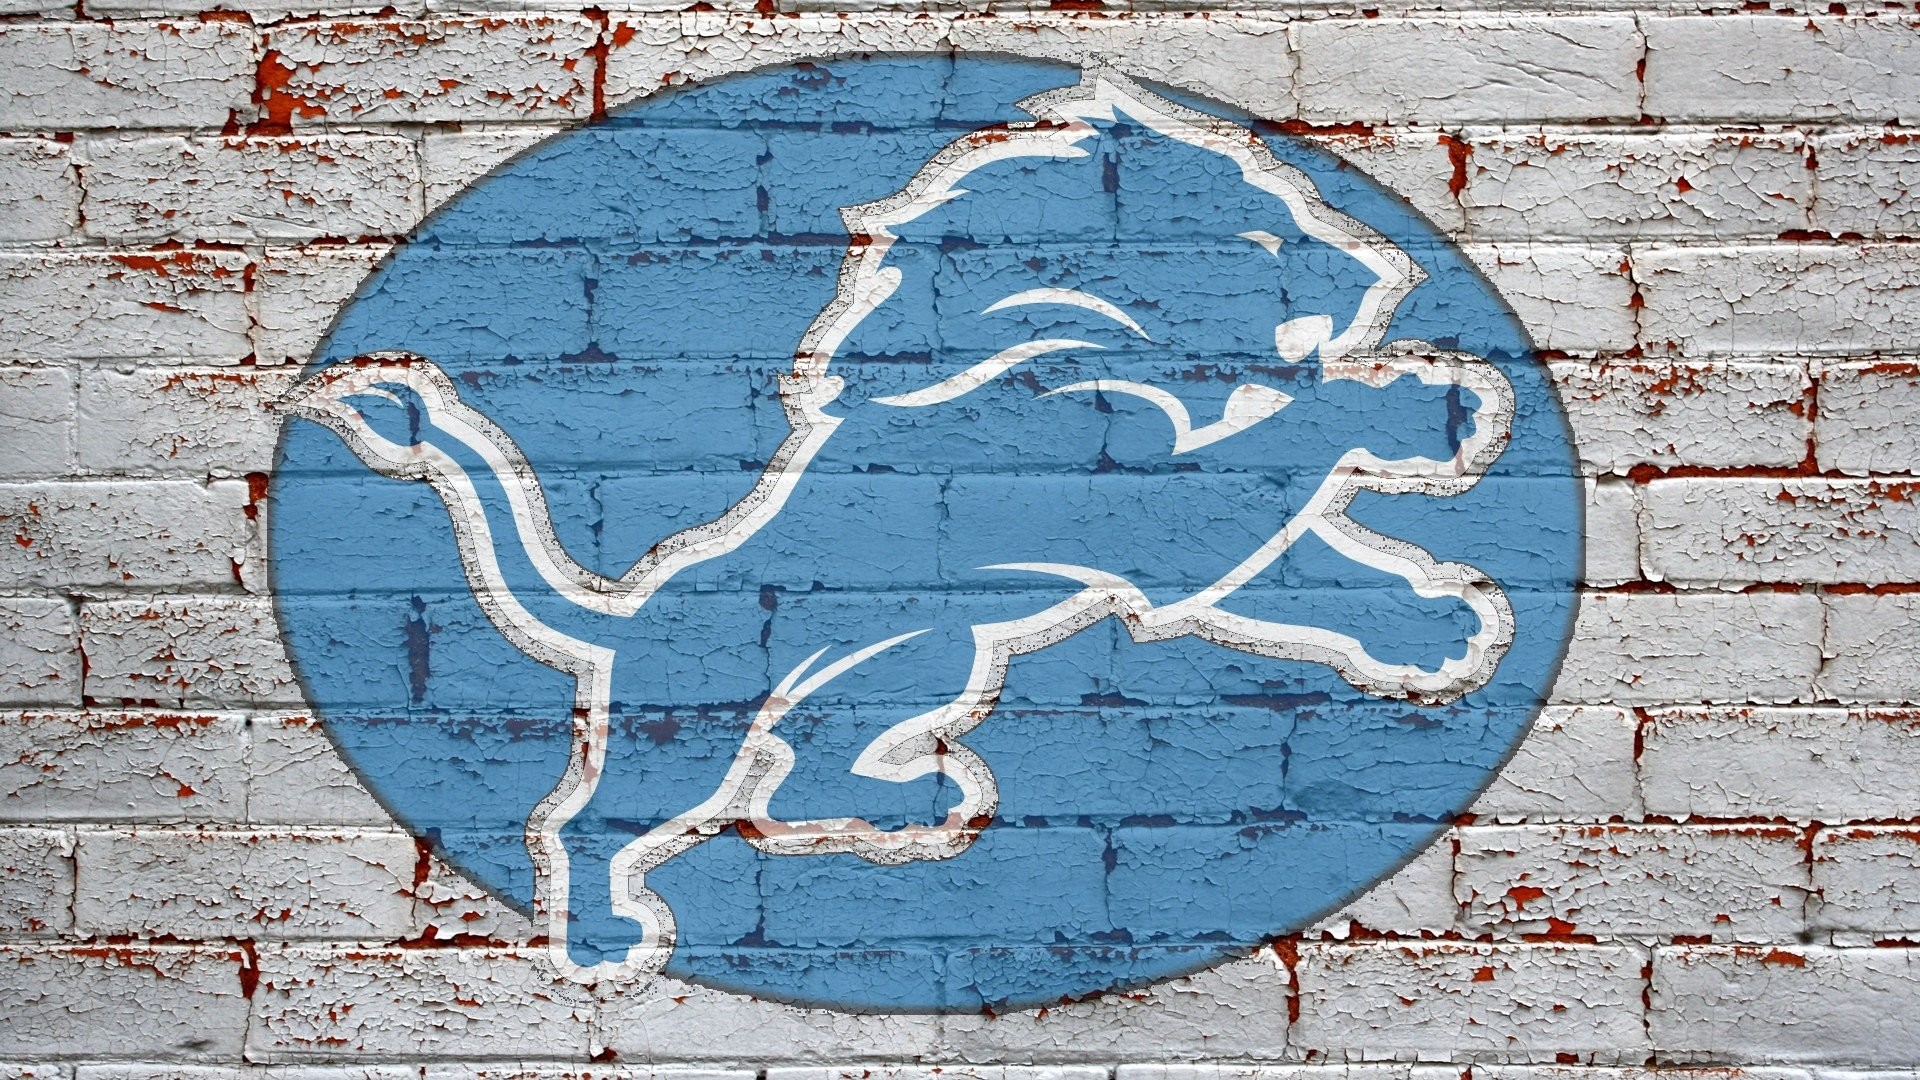 1920x1080 Detroit Lions Iphone WallpaperDetroit Lions Matthew Stafford For Iphone 4